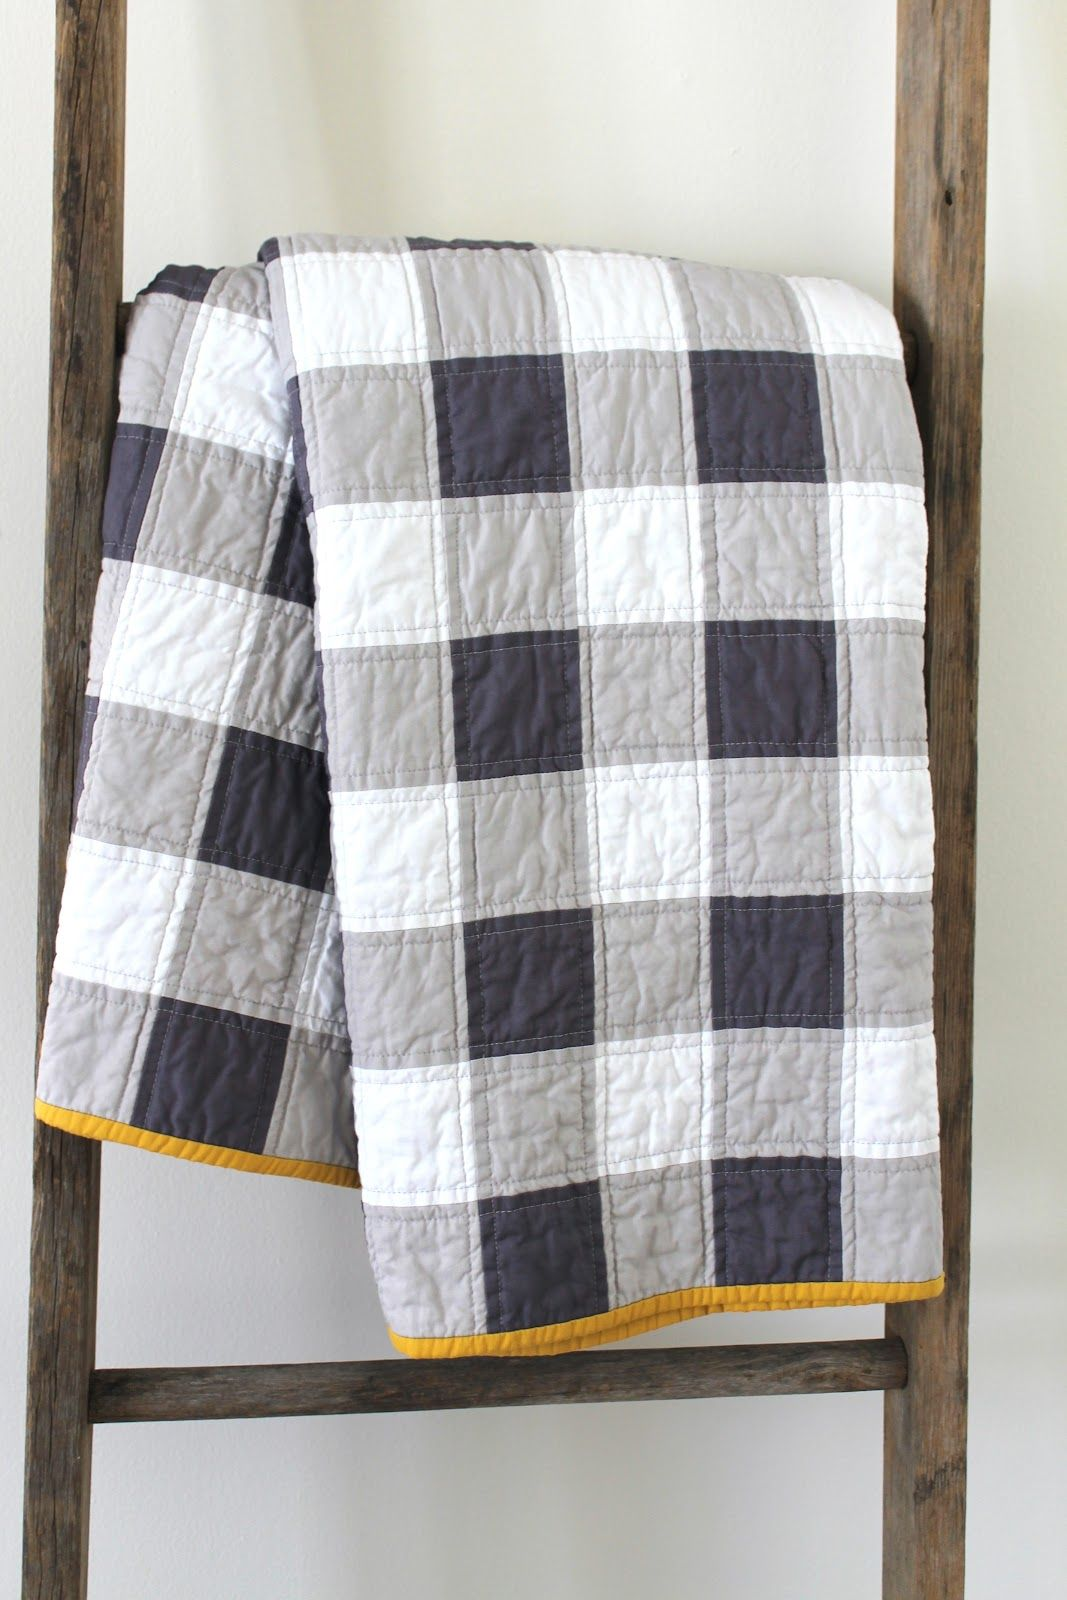 Gingham Patchwork Quilt Fun Idea To Create The Gingham